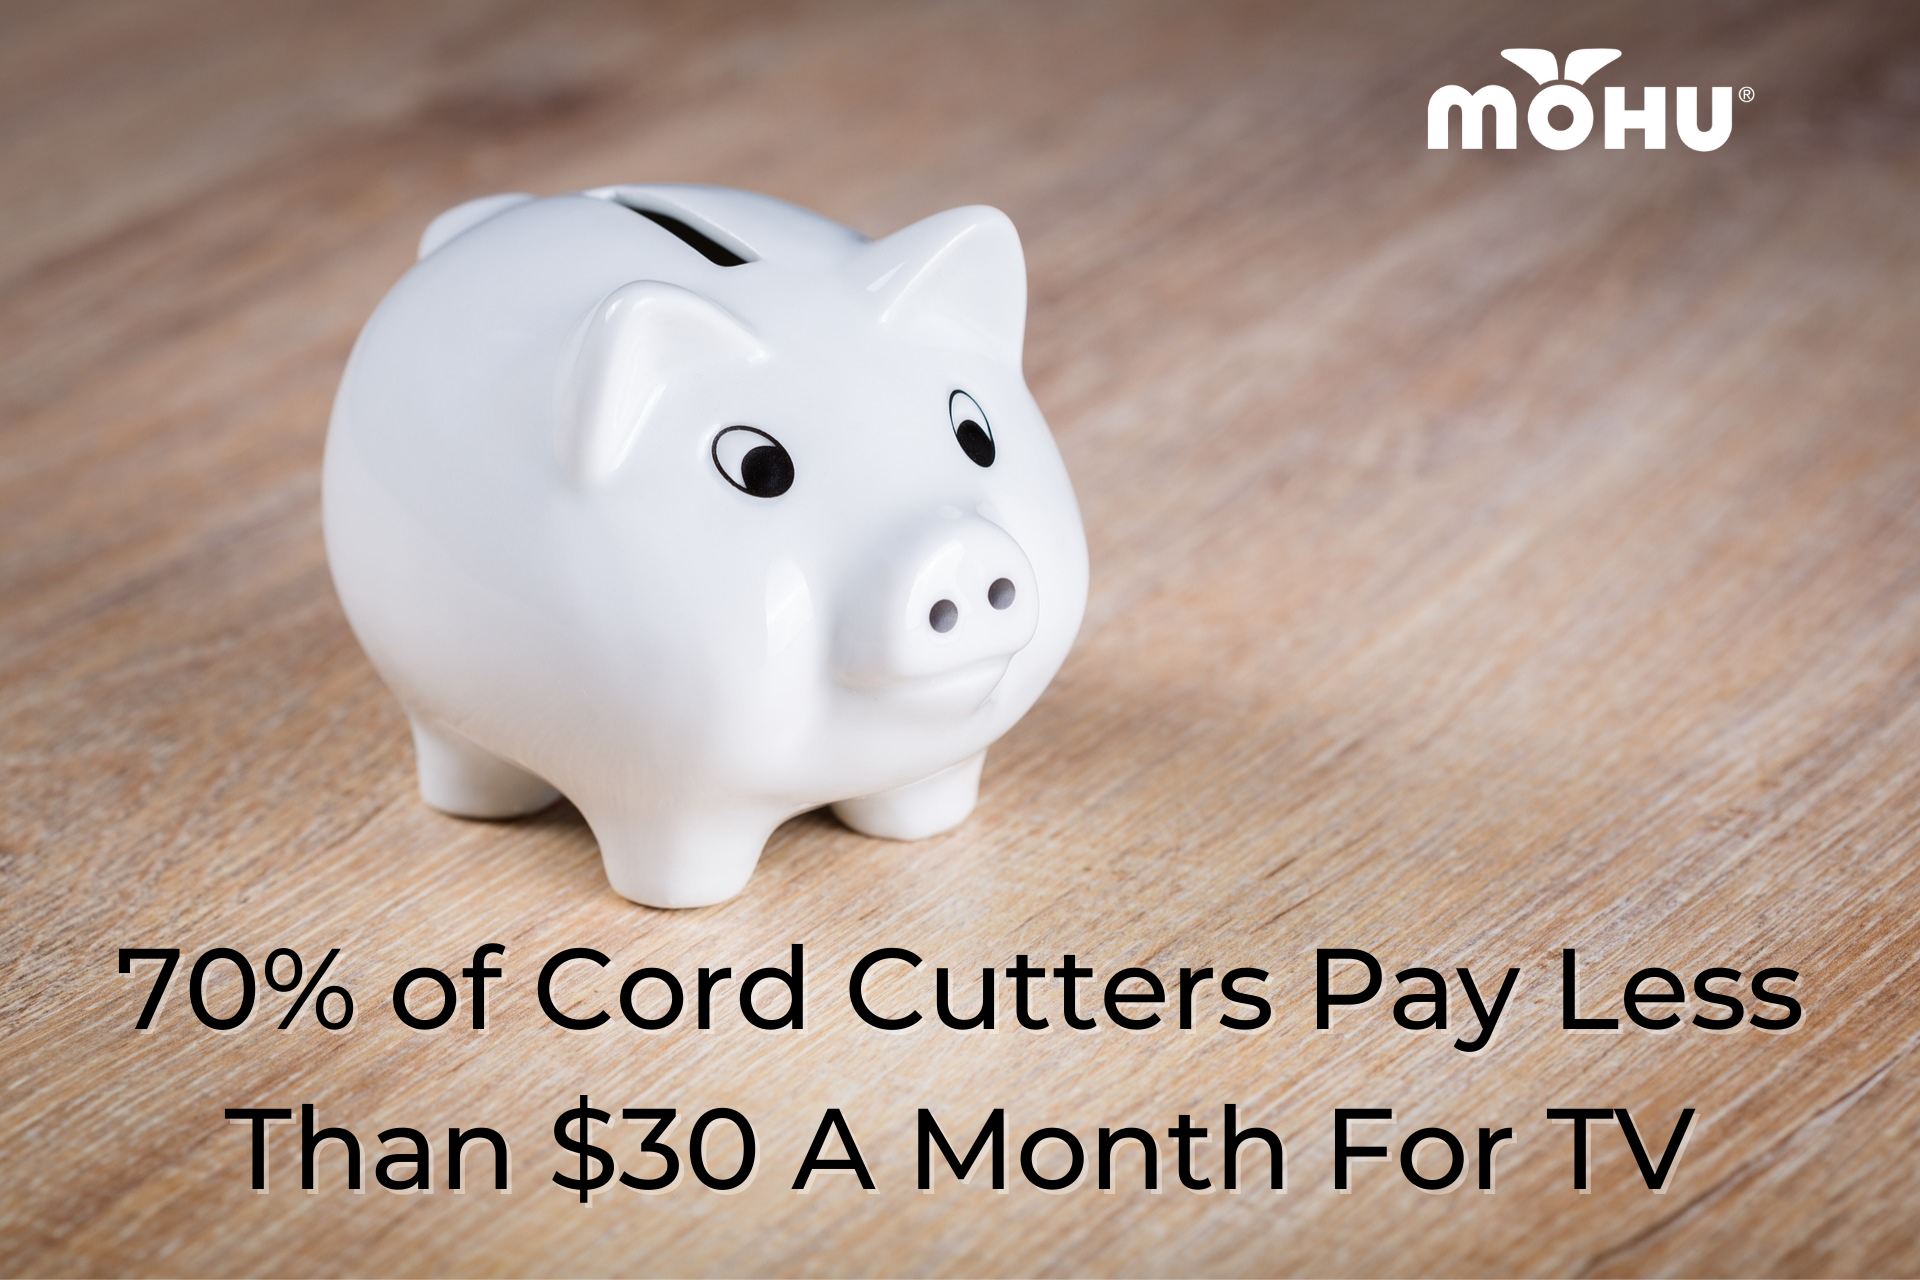 Piggy bank on table, 70% of Cord Cutters Pay Less Than $30 A Month For TV, Mohu logo